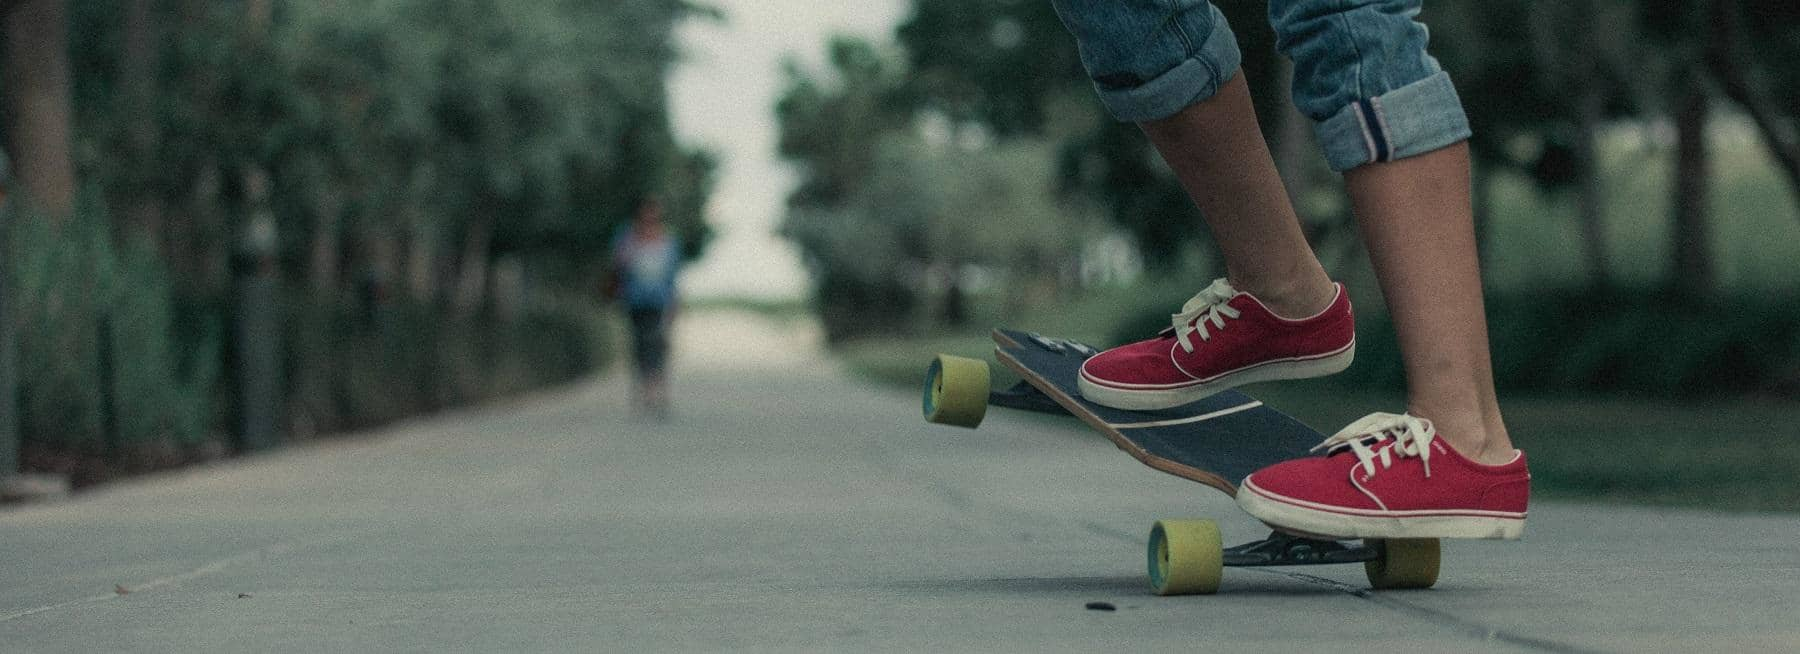 What to Choose: Longboard or Cruiser Skateboard (Expert's Guide)